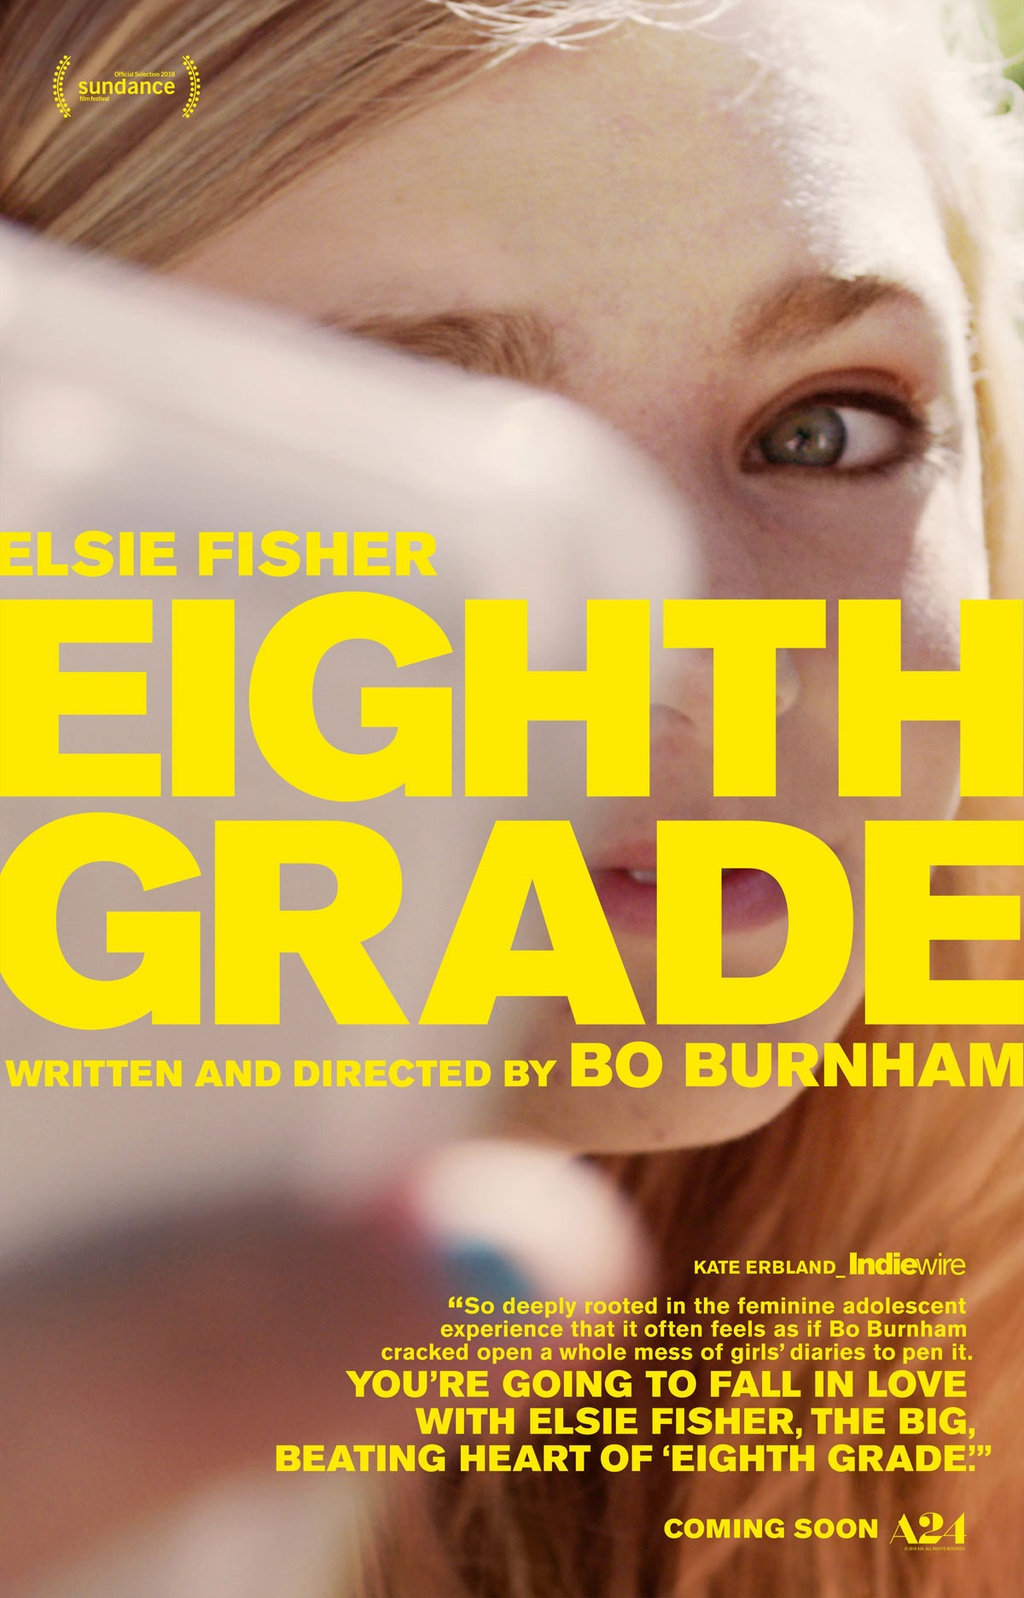 'Eighth Grade': Chan dung sinh dong ve the he Z tai My hinh anh 1